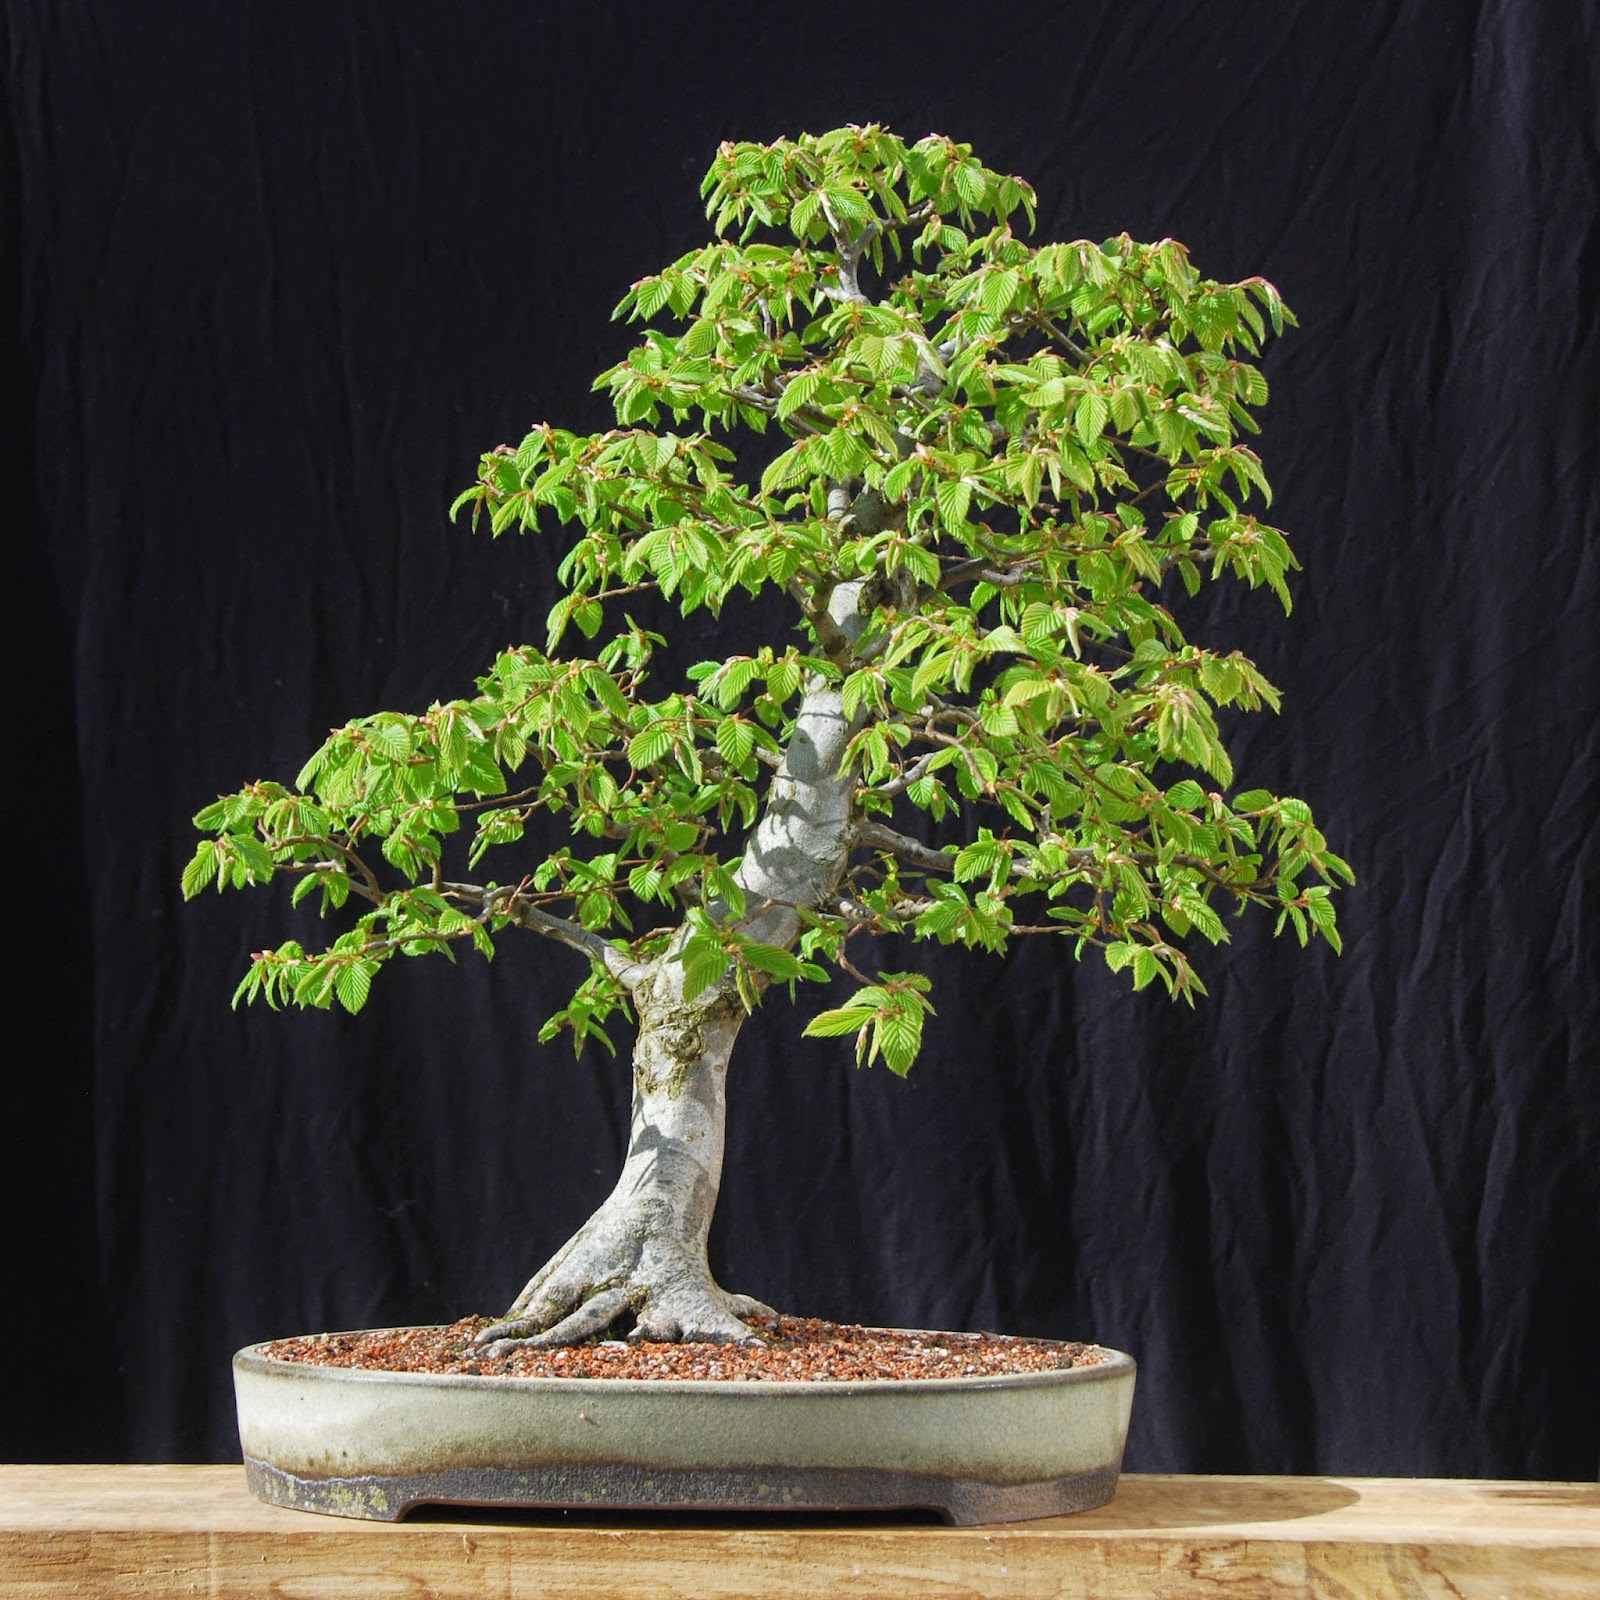 Silva Naturalis Hornbeam Bonsai 6 Years Of Development